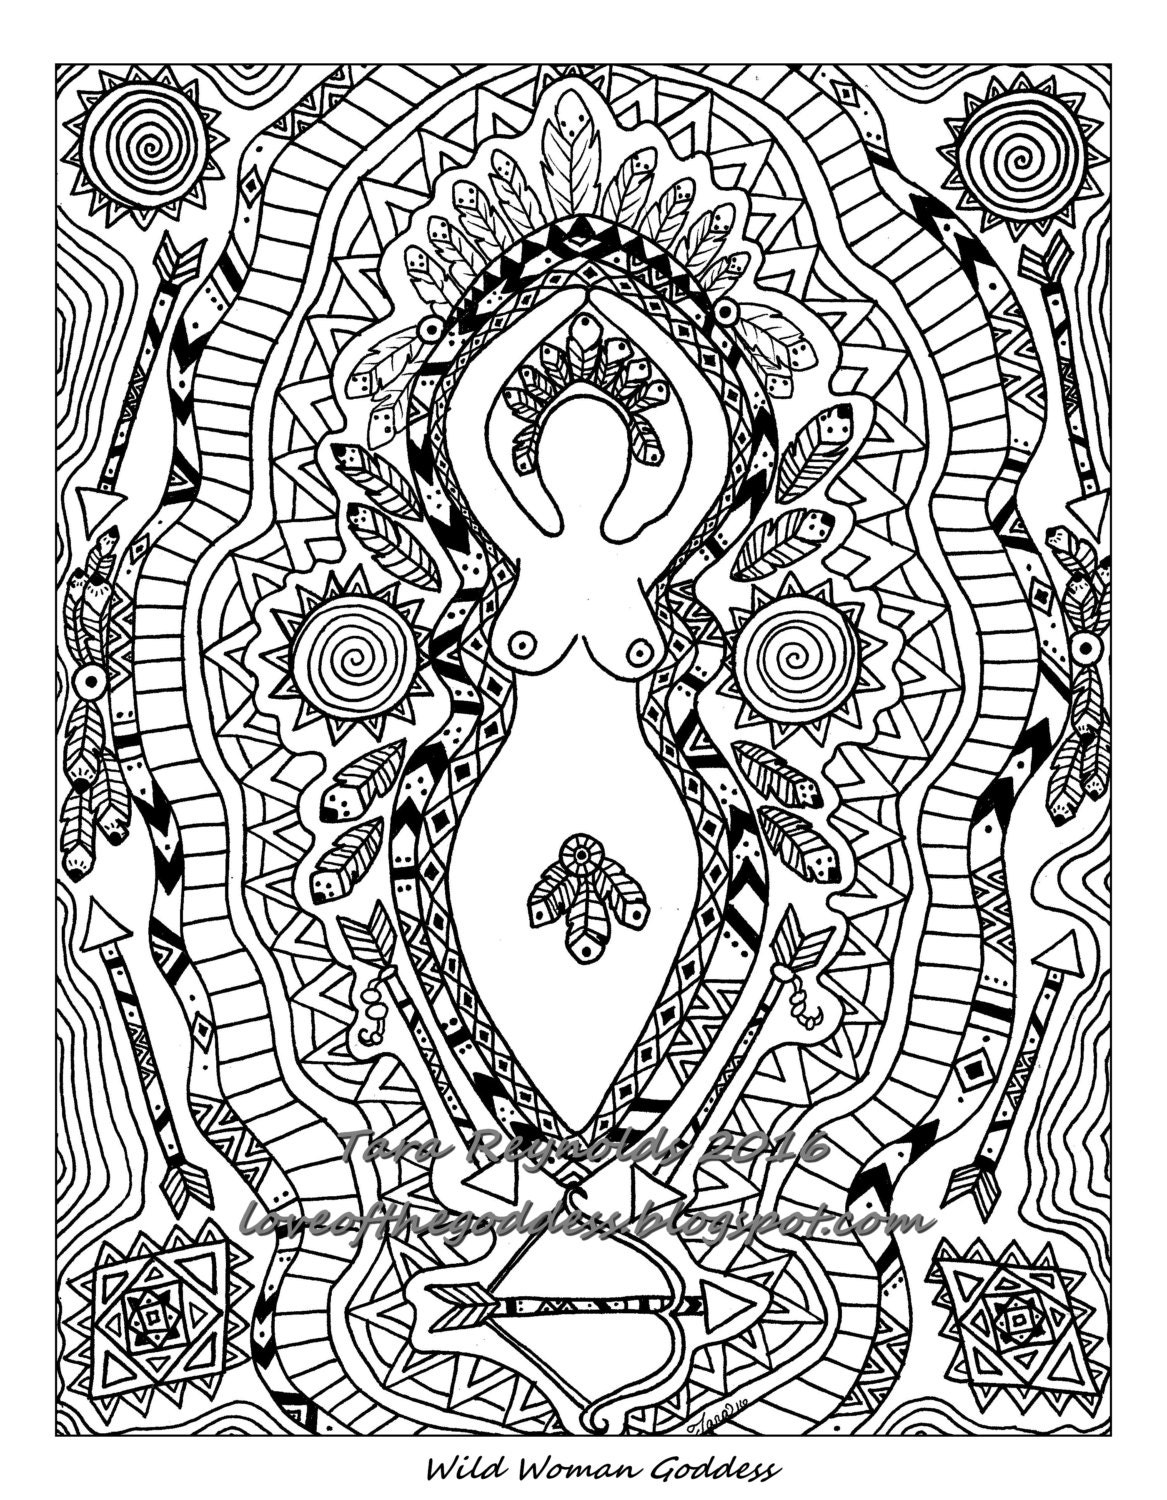 Goddess Art Coloring Pages For Adults Goddess Coloring Page Pagan Coloring Pages